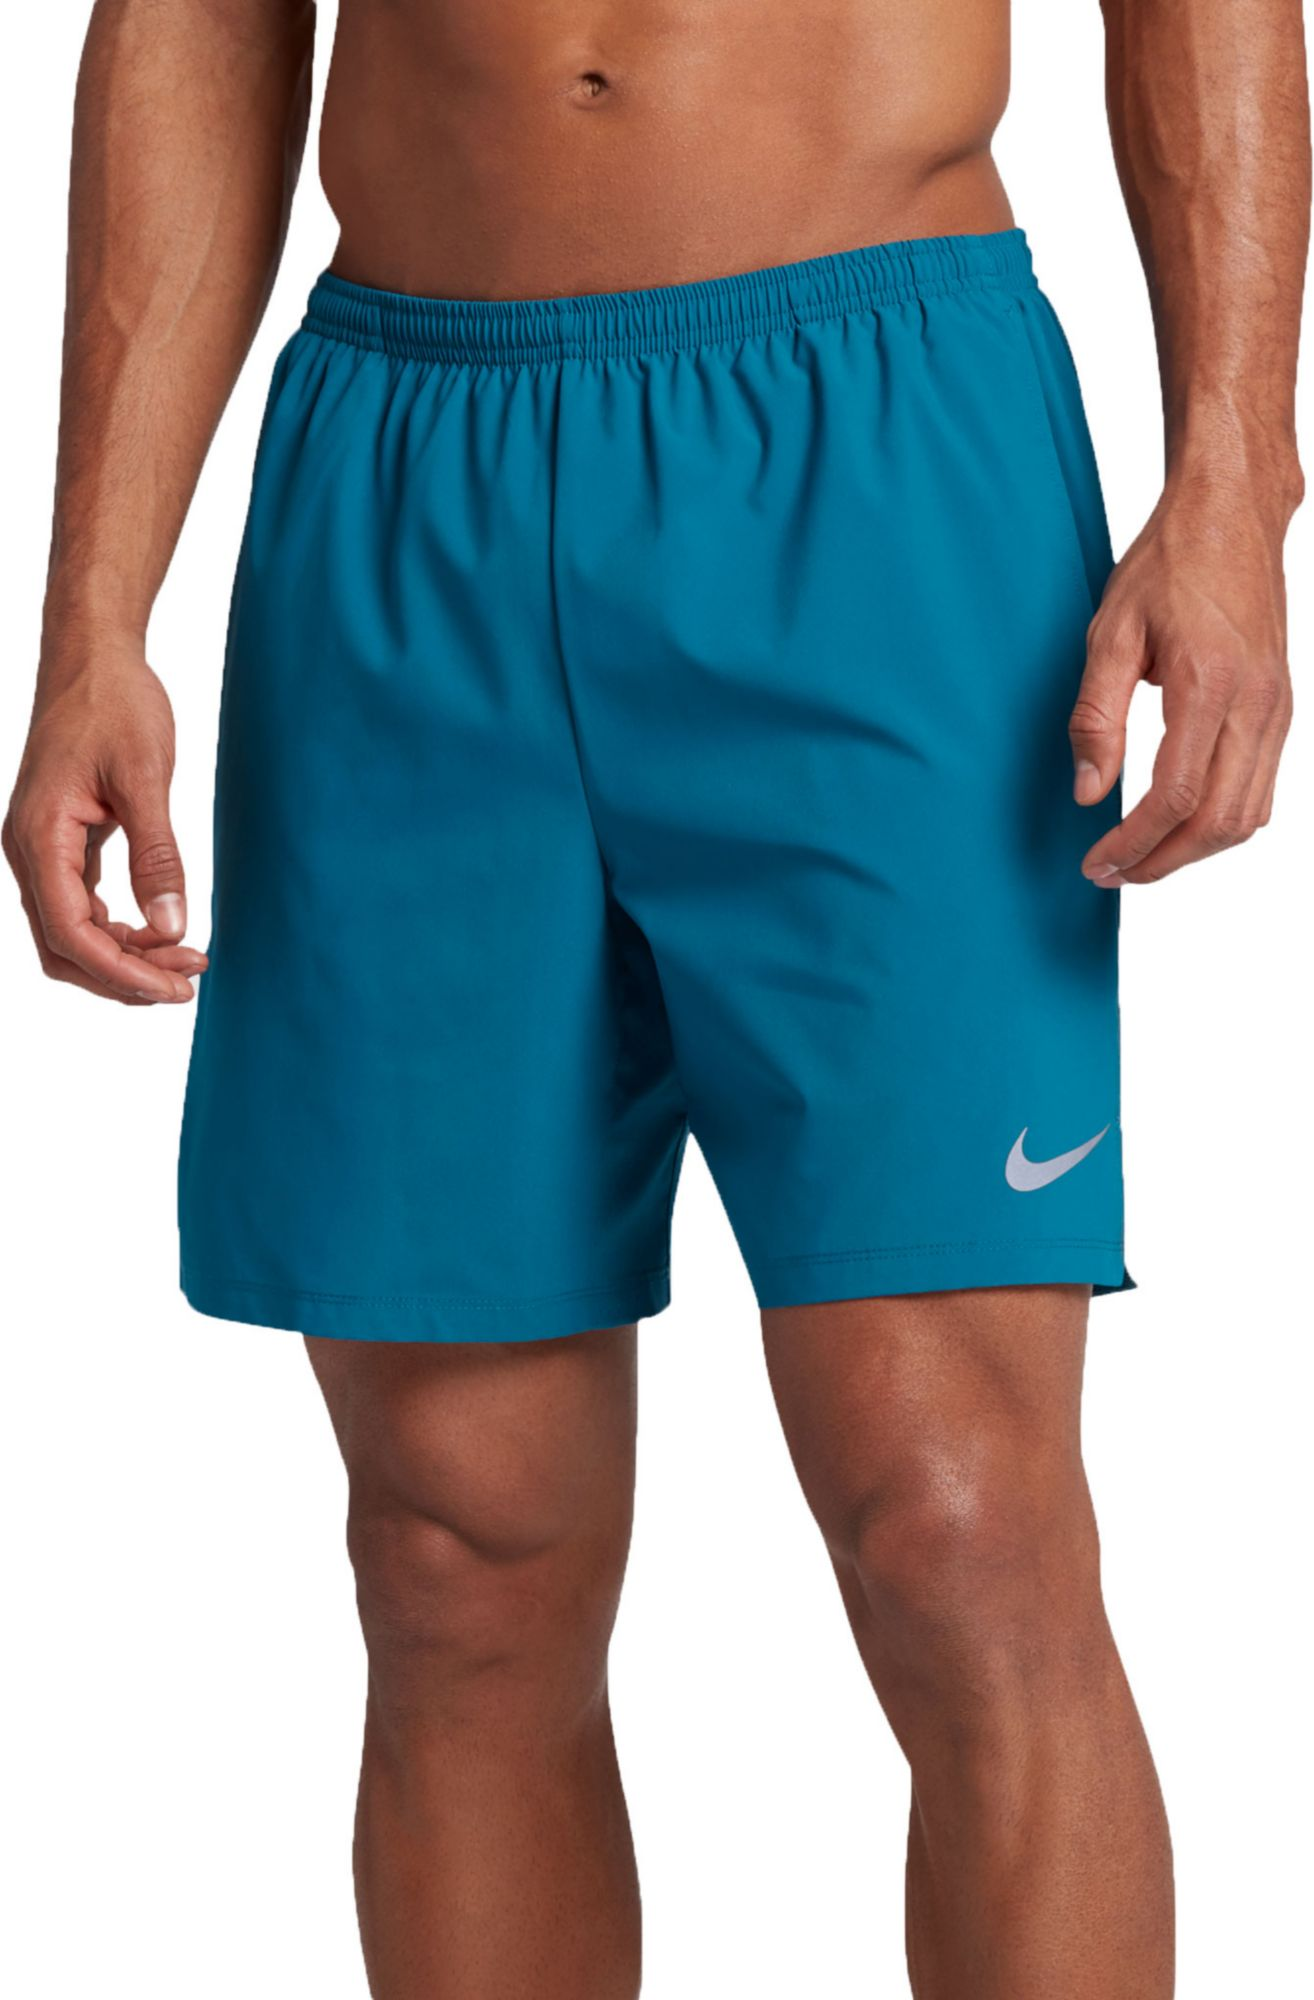 Men's 7 Inch Inseam Shorts | DICK'S Sporting Goods